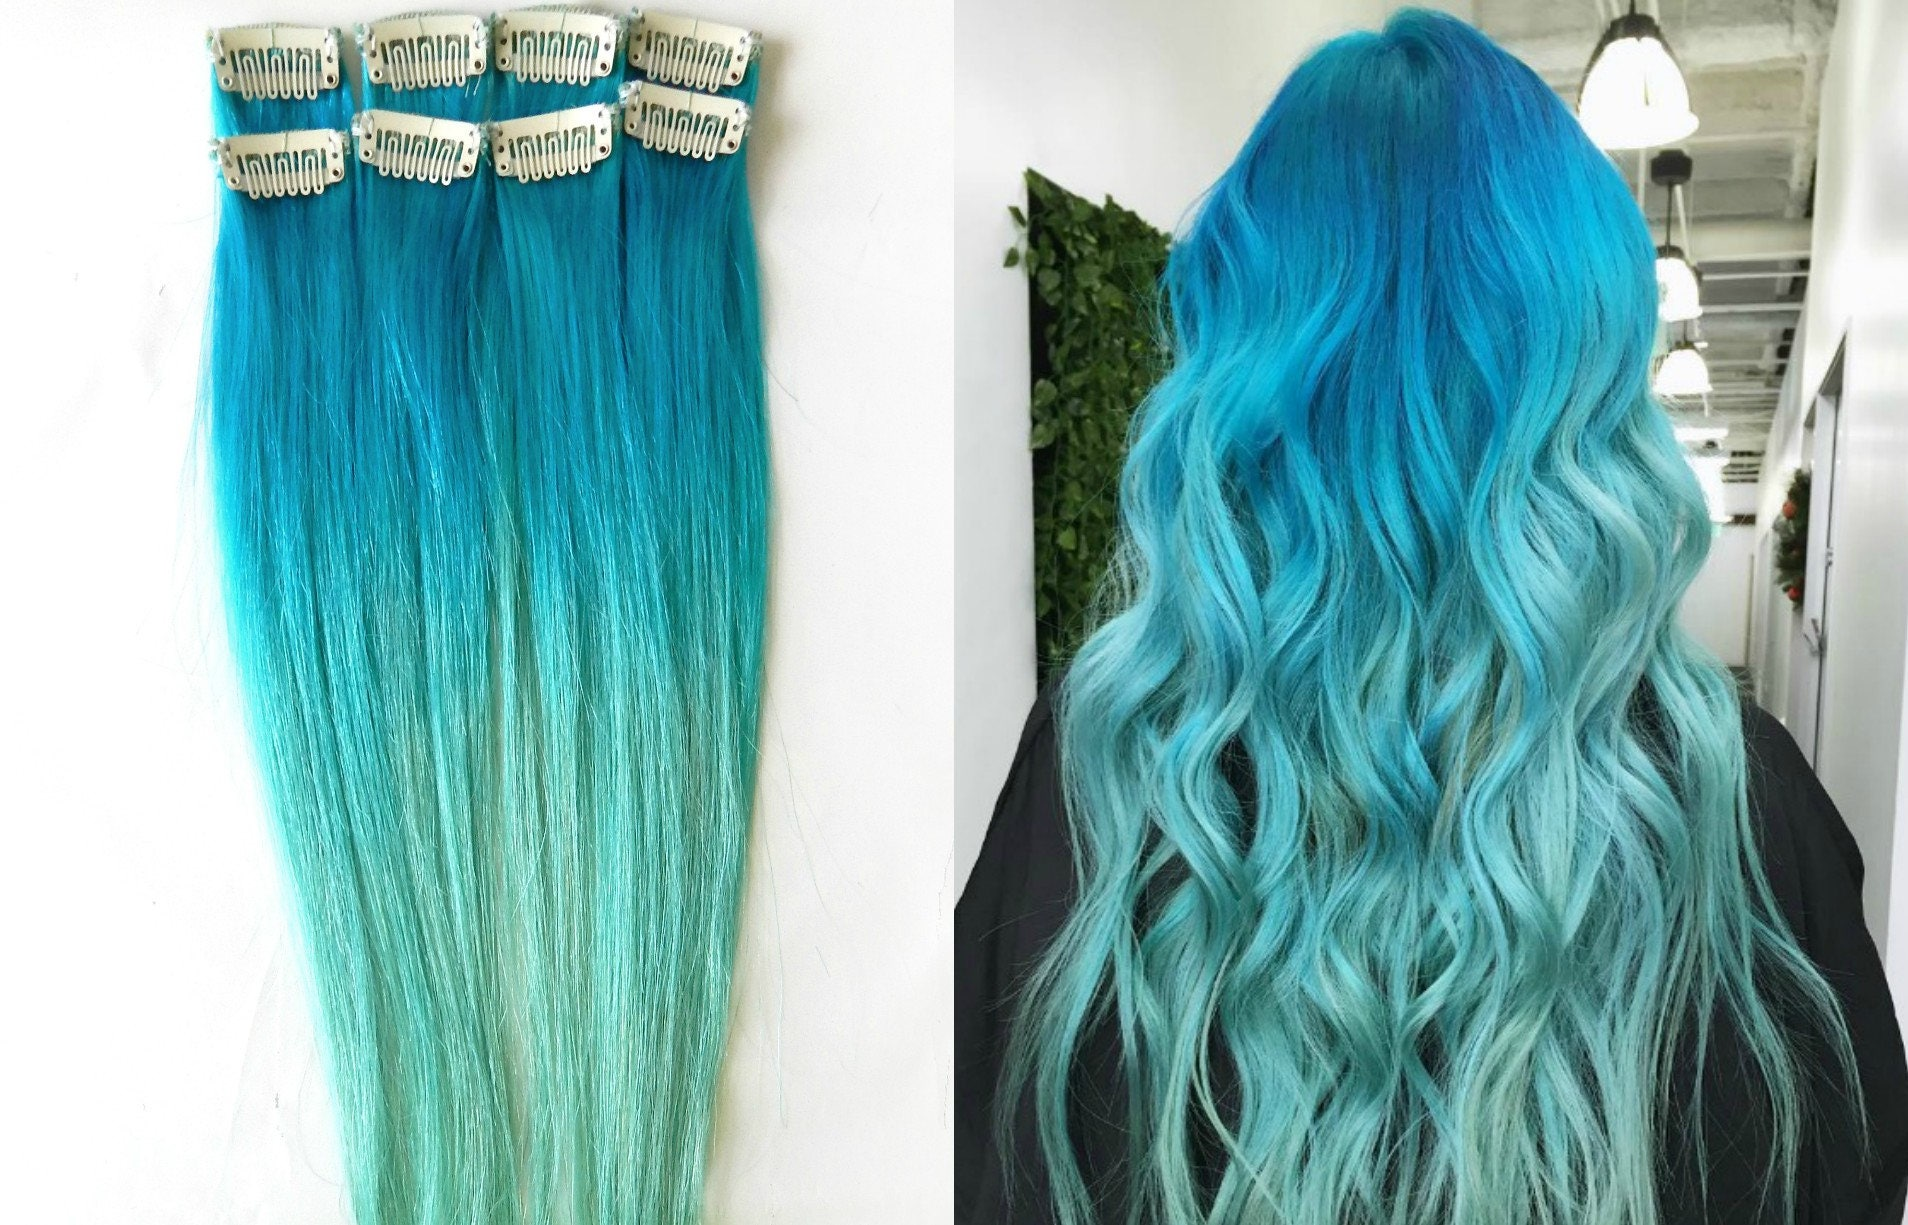 Mermaid Ombre Human Hair Extensions 1 Pc Blue Ombre Hair Etsy